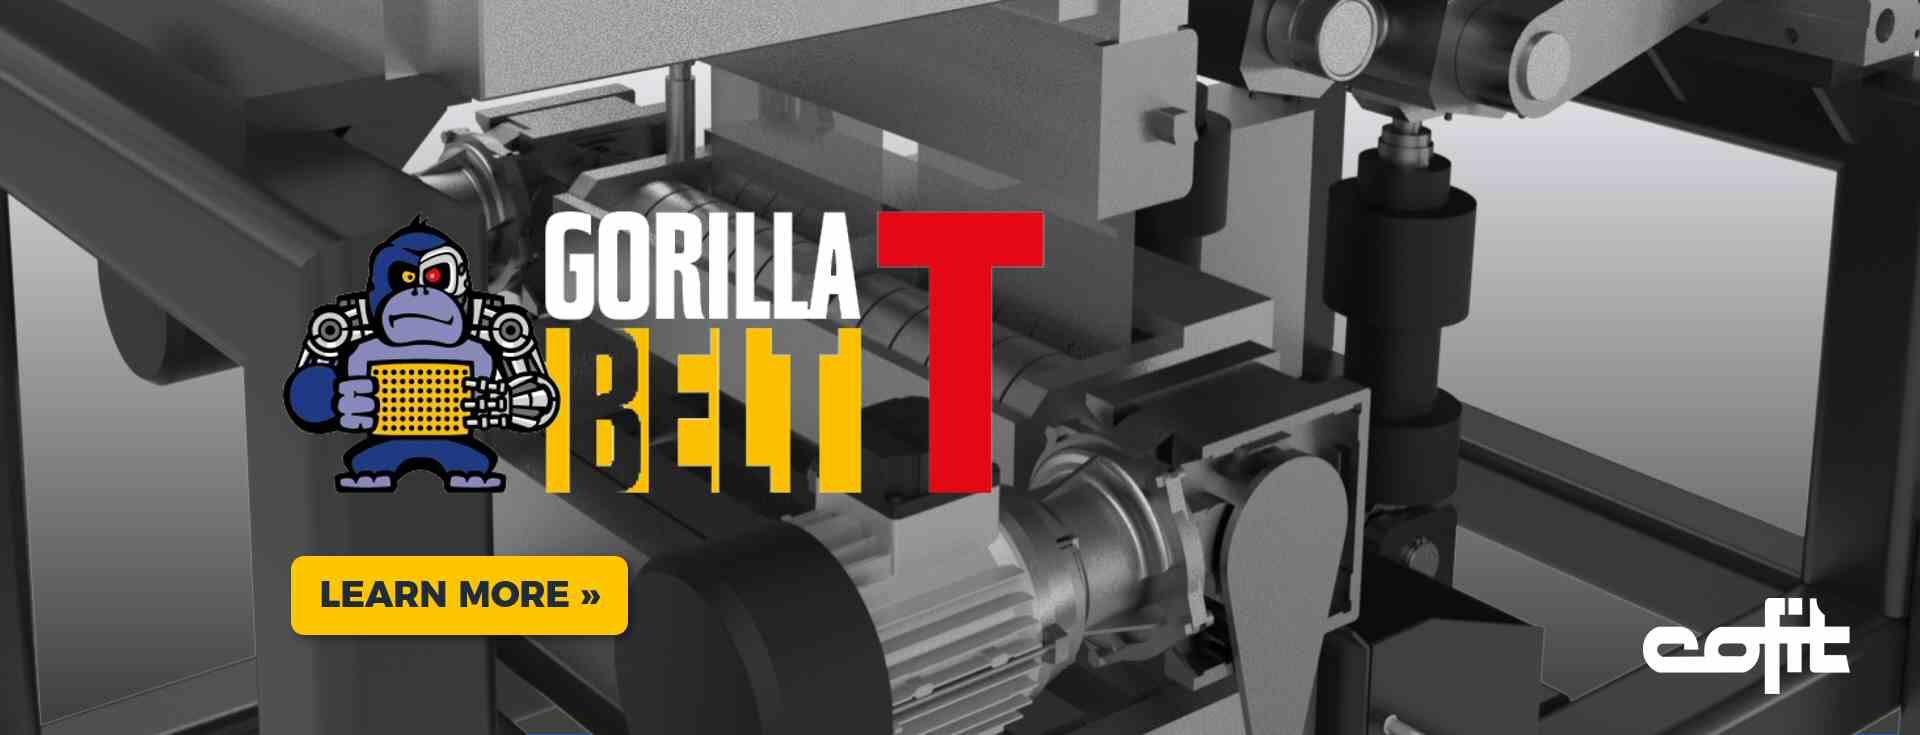 Gorillabelt T : screenchanger Cofit International 2020